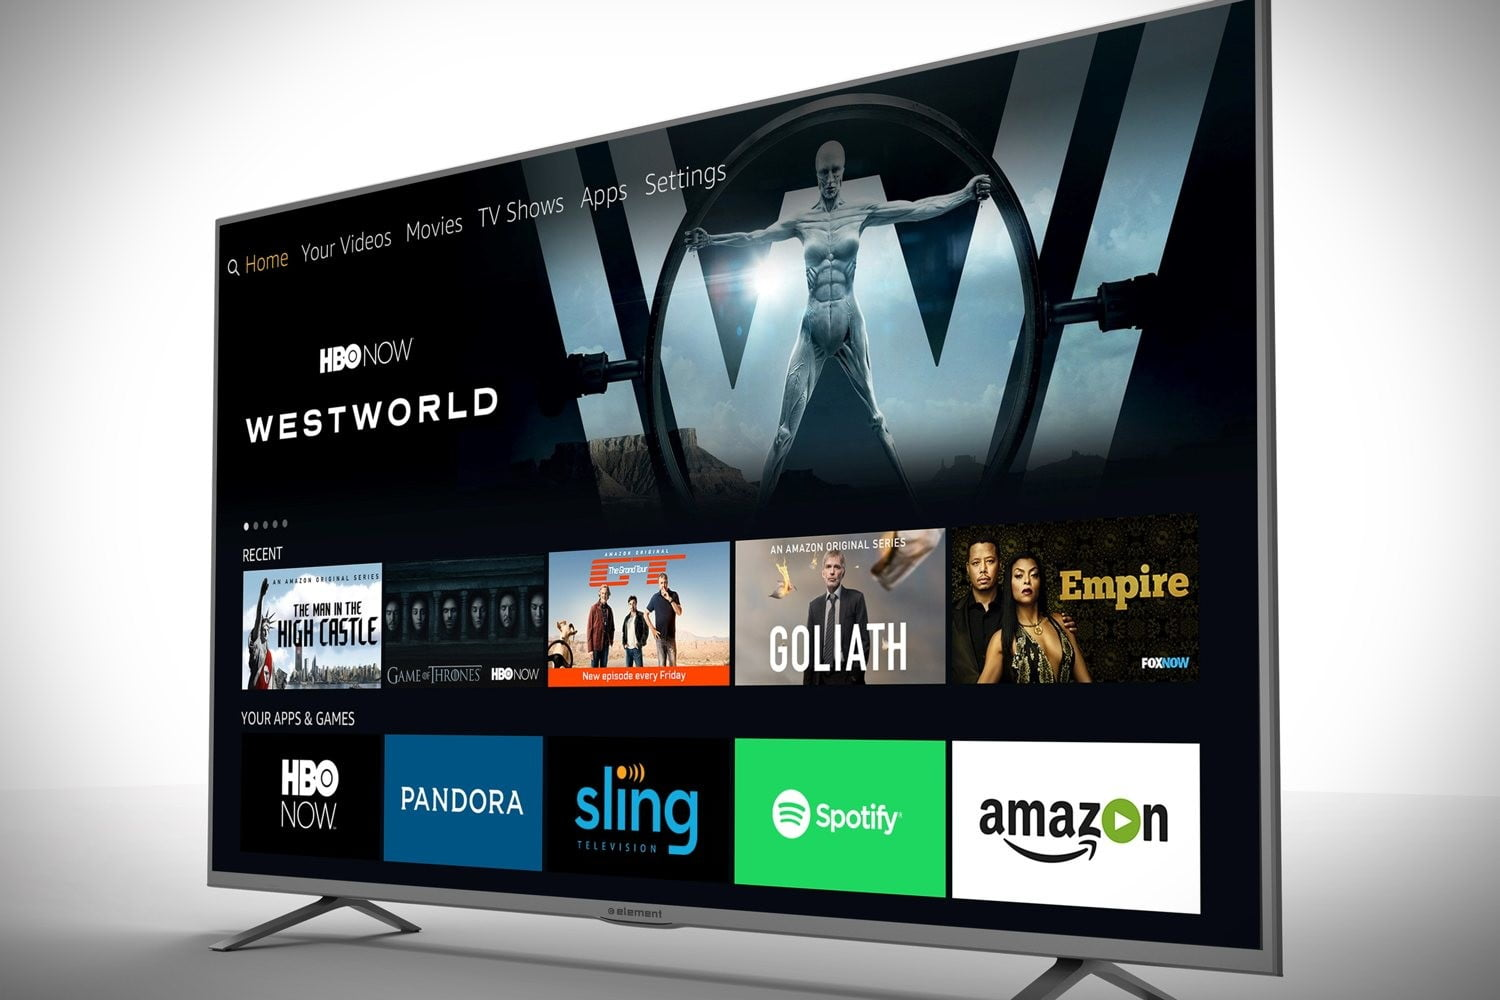 Amazon Channels Lets You Log Into Showtime, HBO with Amazon